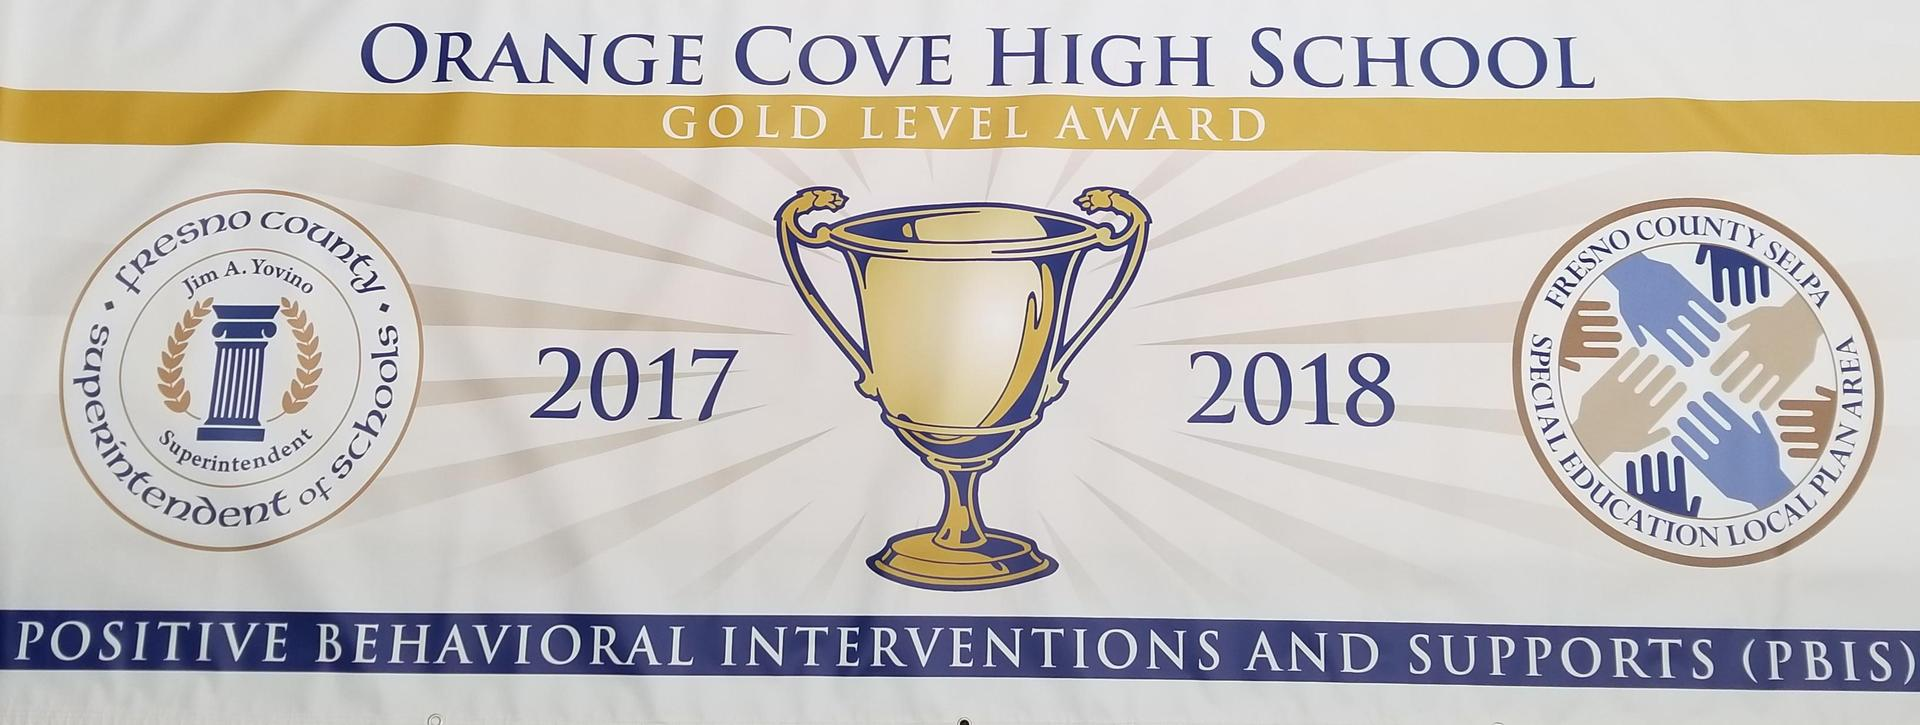 Orange Cove High Gold Level Award